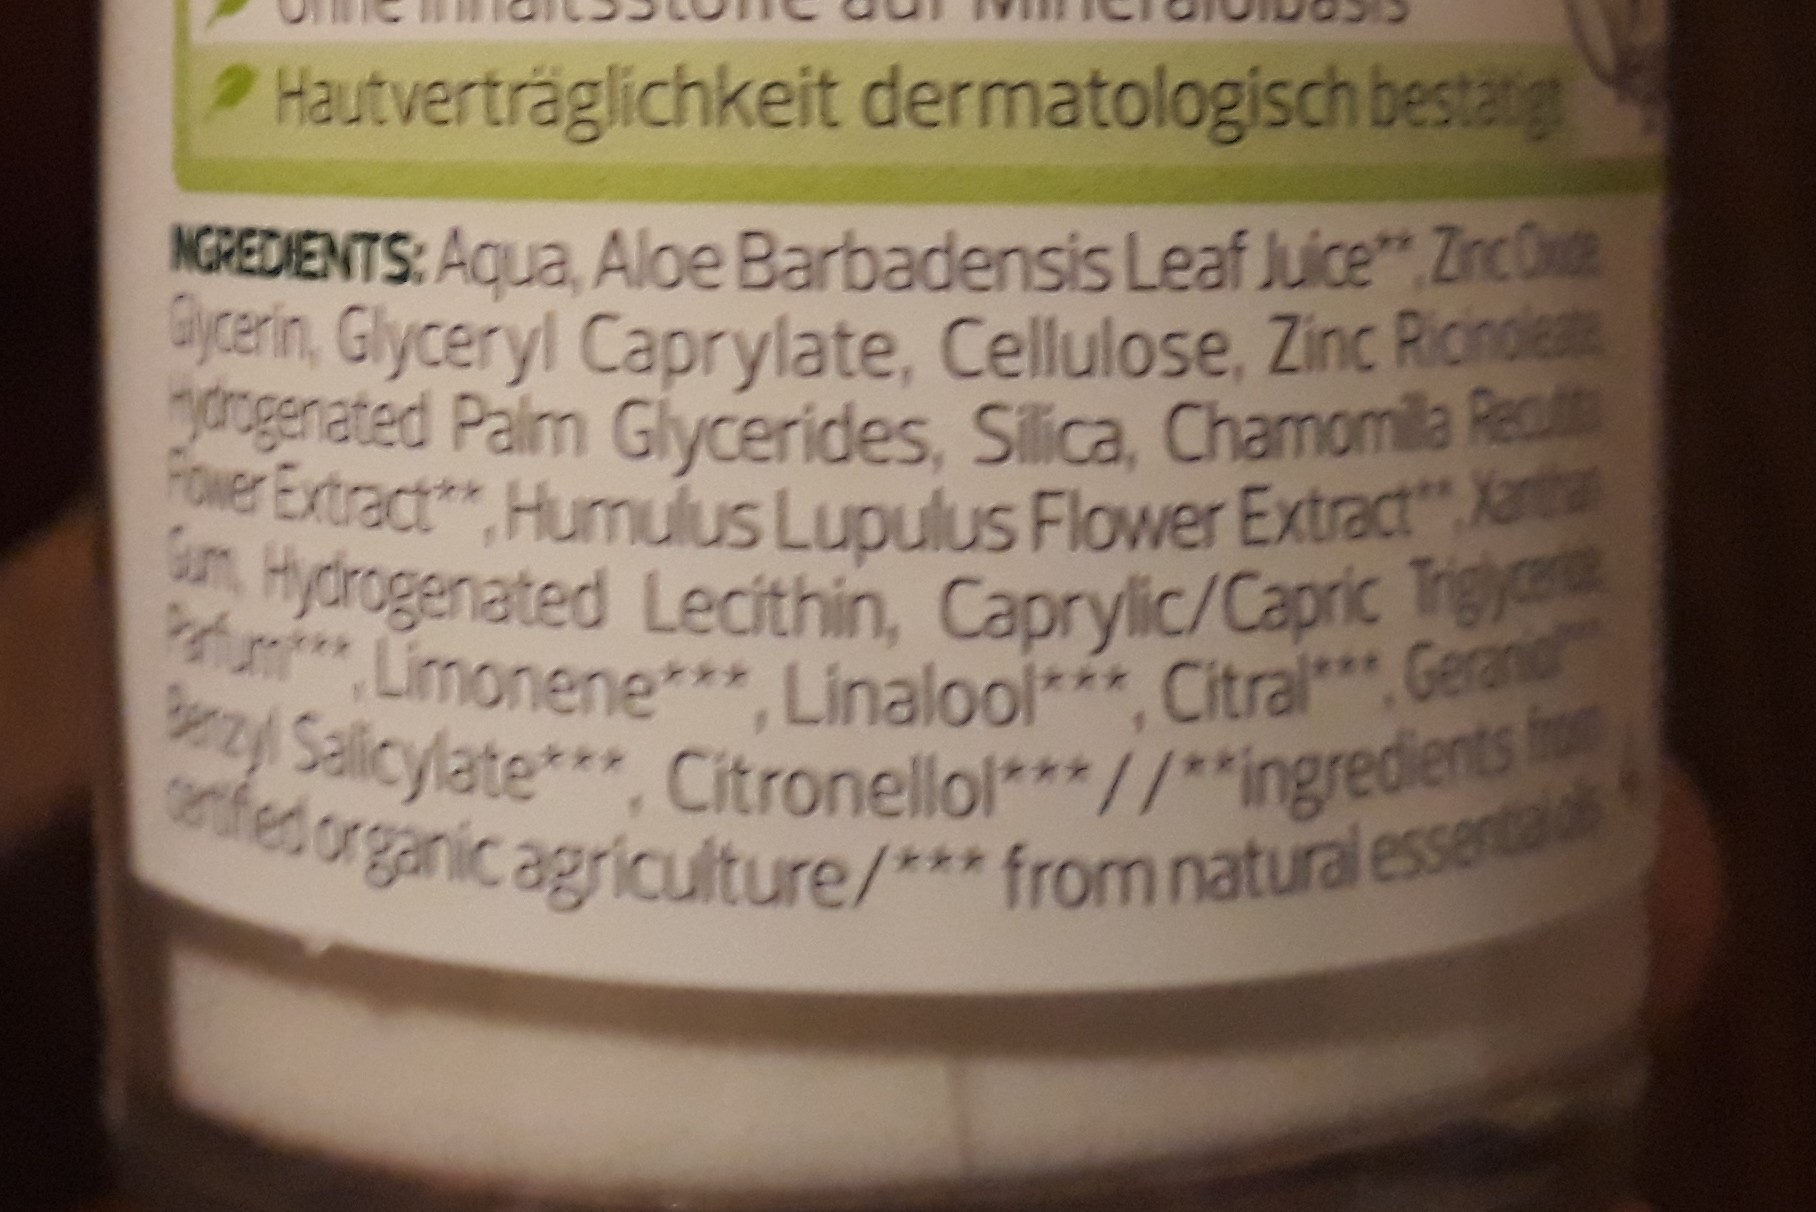 Deo Roll-on - Ingredients